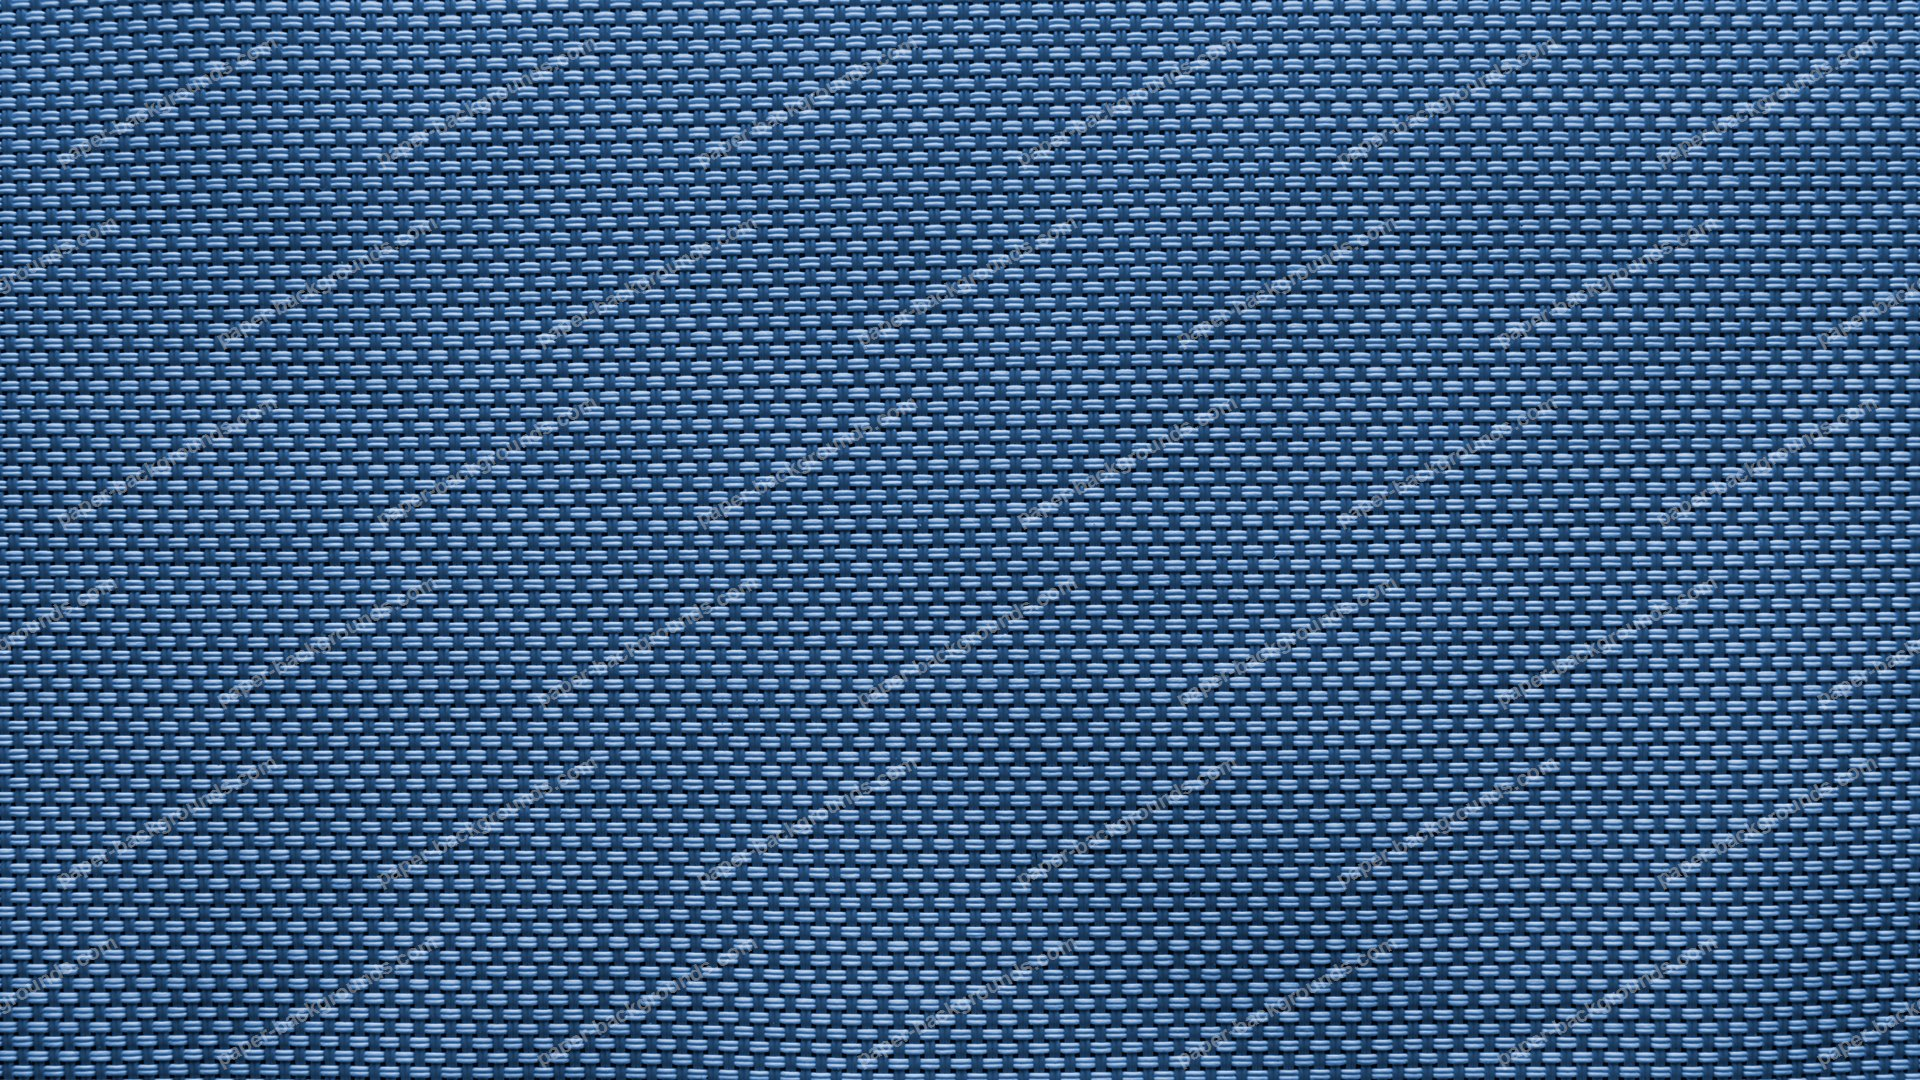 Chequered Blue Squares Canvas Texture HD 1920 x 1080p